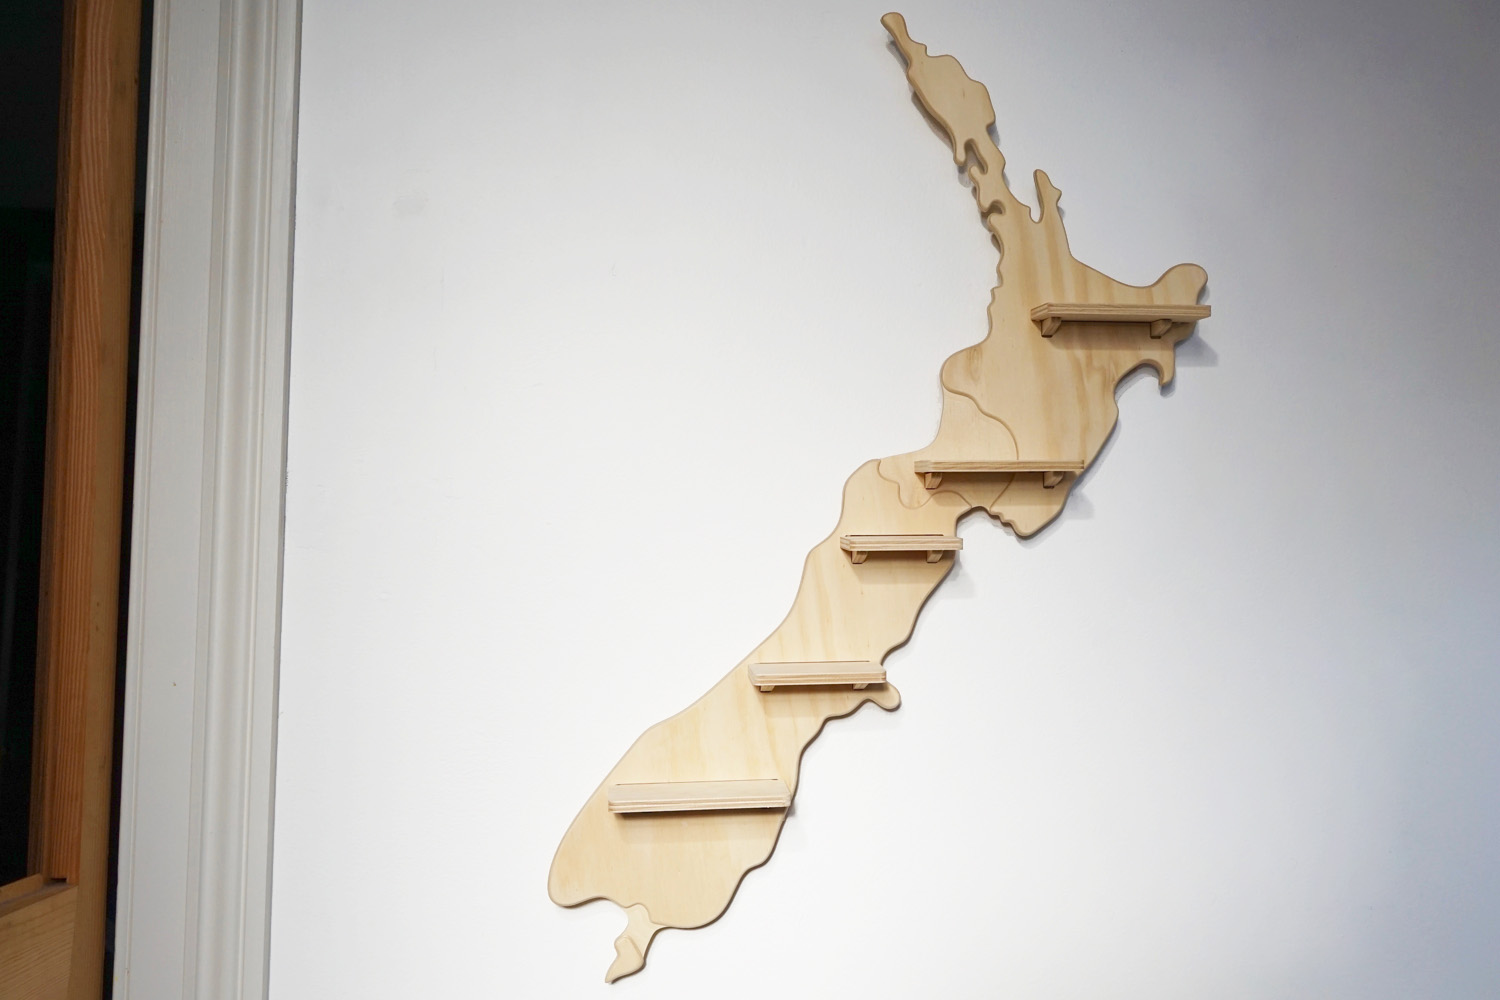 NZ Treasure Board